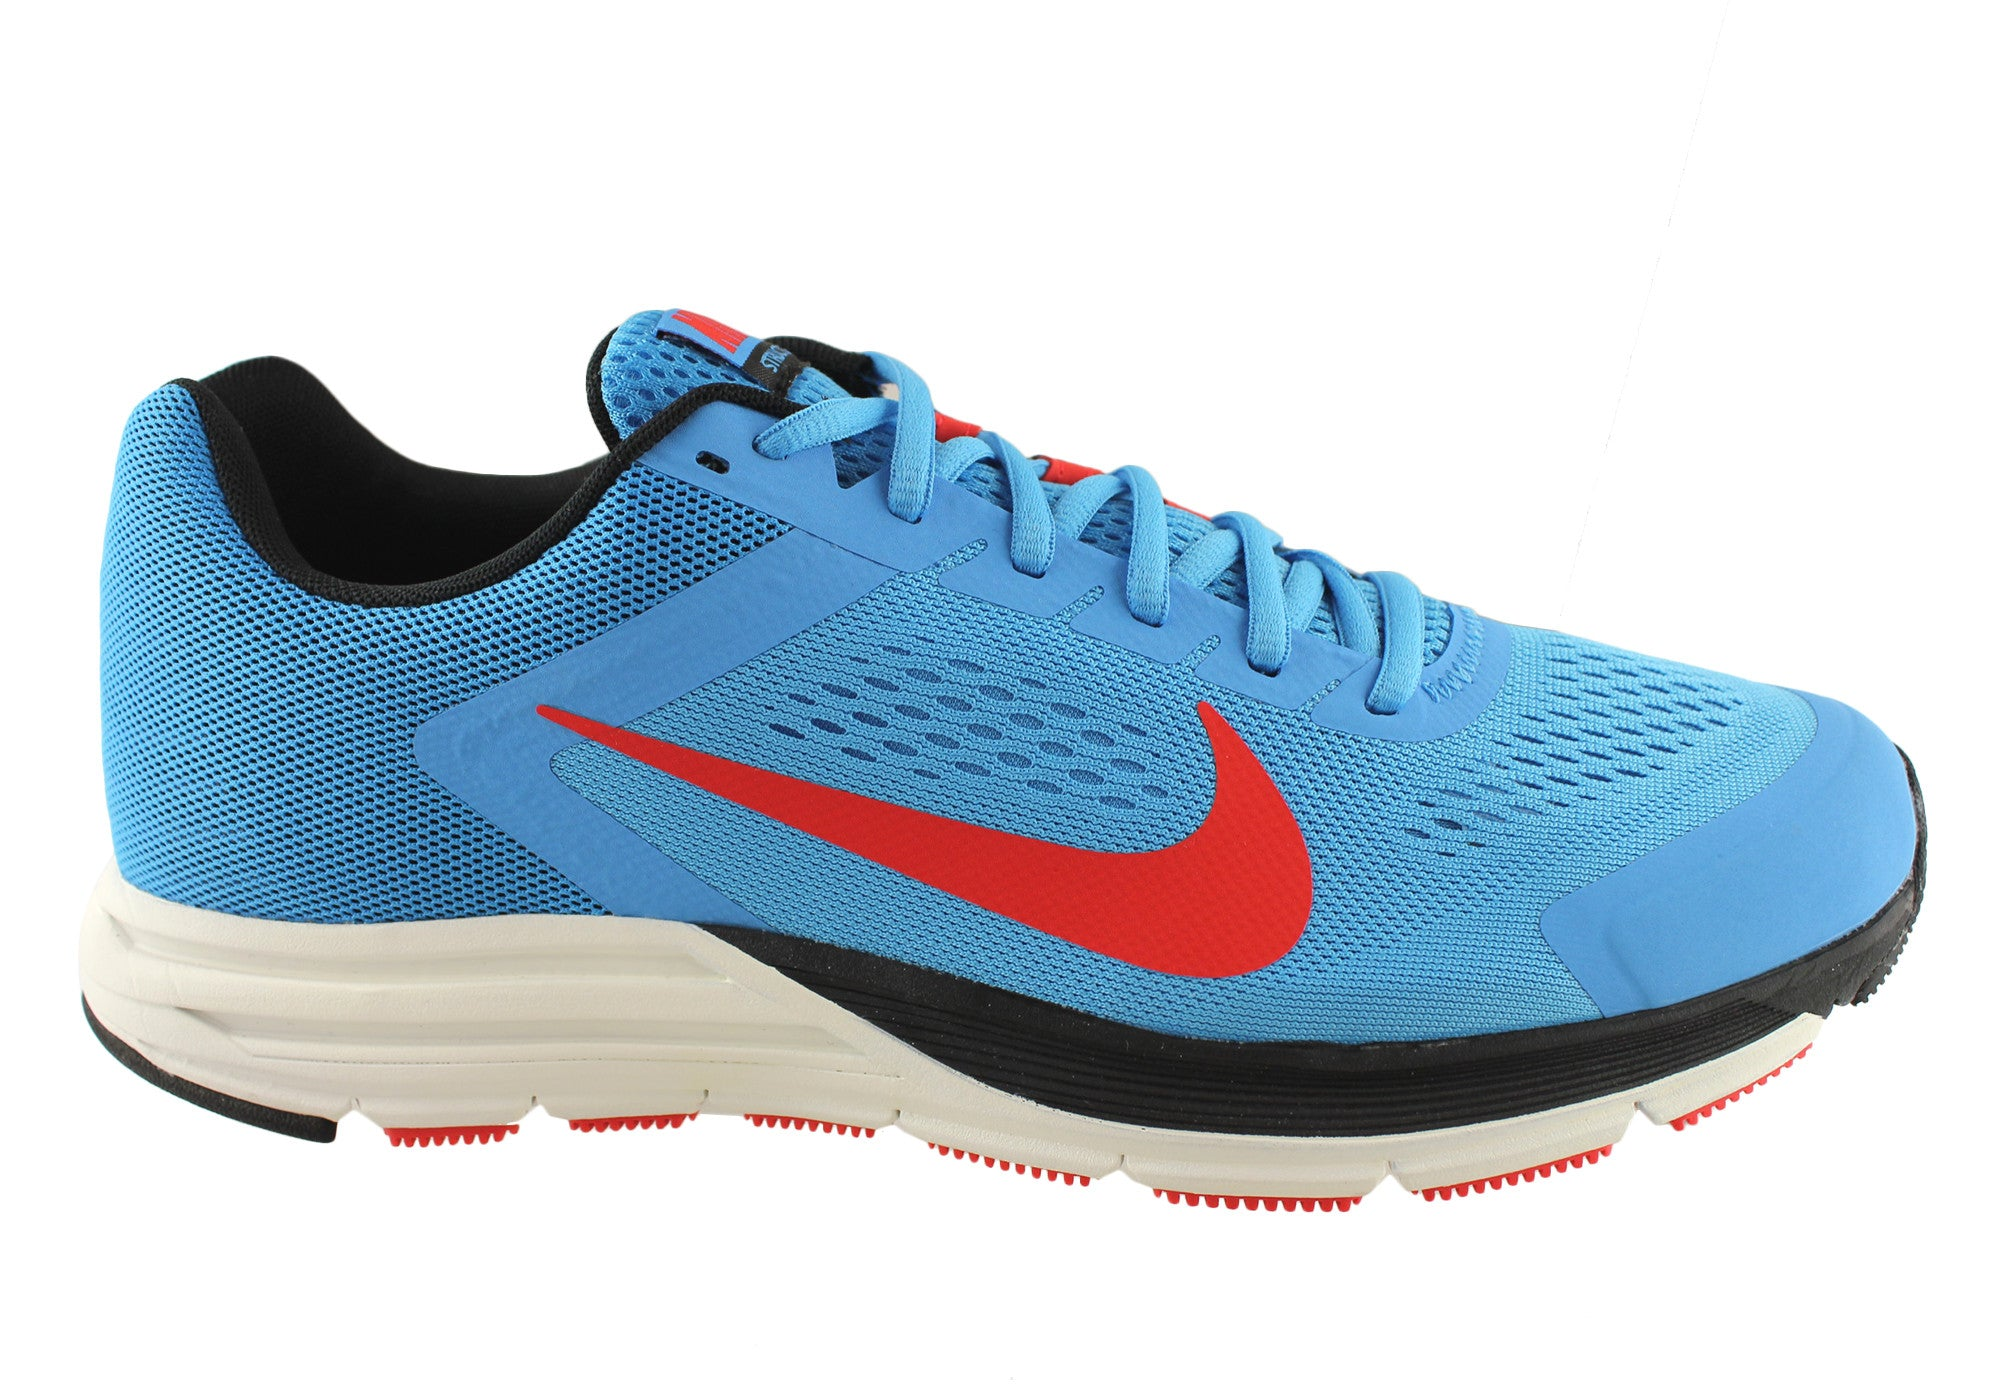 newest d2e80 8bda4 Nike Zoom Structure+17 Mens Comfortable Athletic Shoes ...